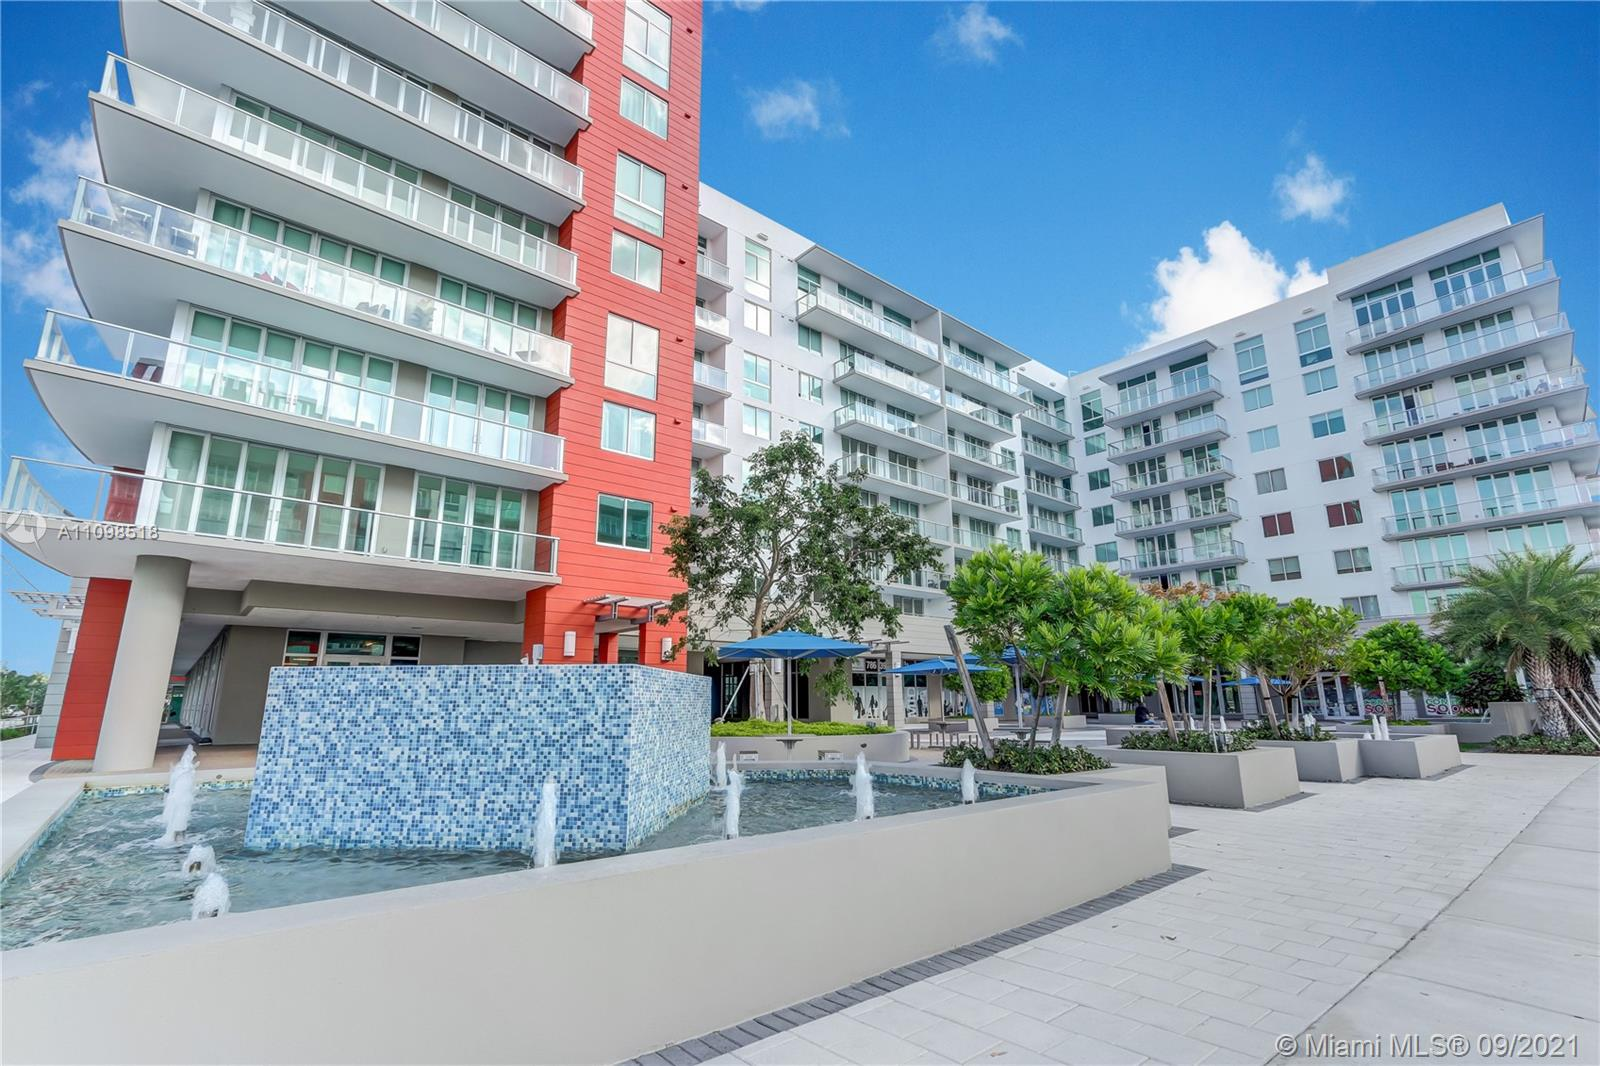 Midtown Doral - Building 3 #816 - 7825 NW 107th Ave #816, Doral, FL 33178